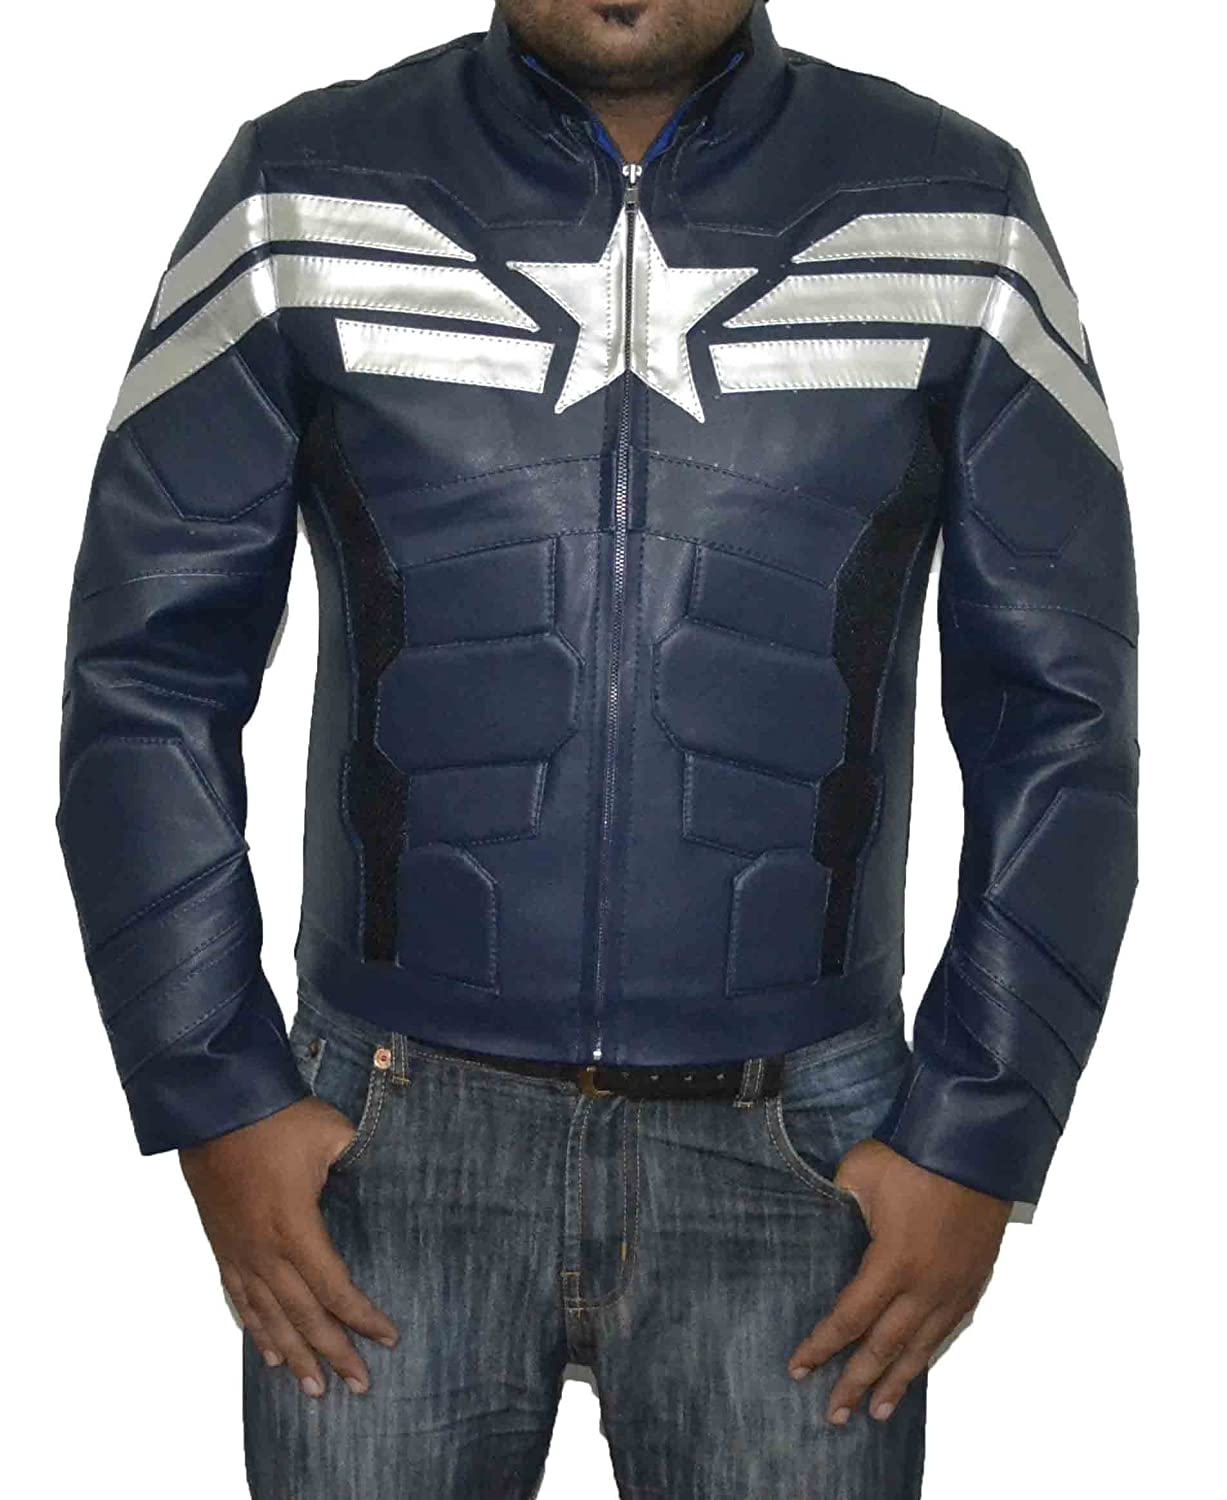 CAPTAIN AMERICA 2 CHRIS EVANS BLACK SLIM FIT SHEEP LEATHER JACKET